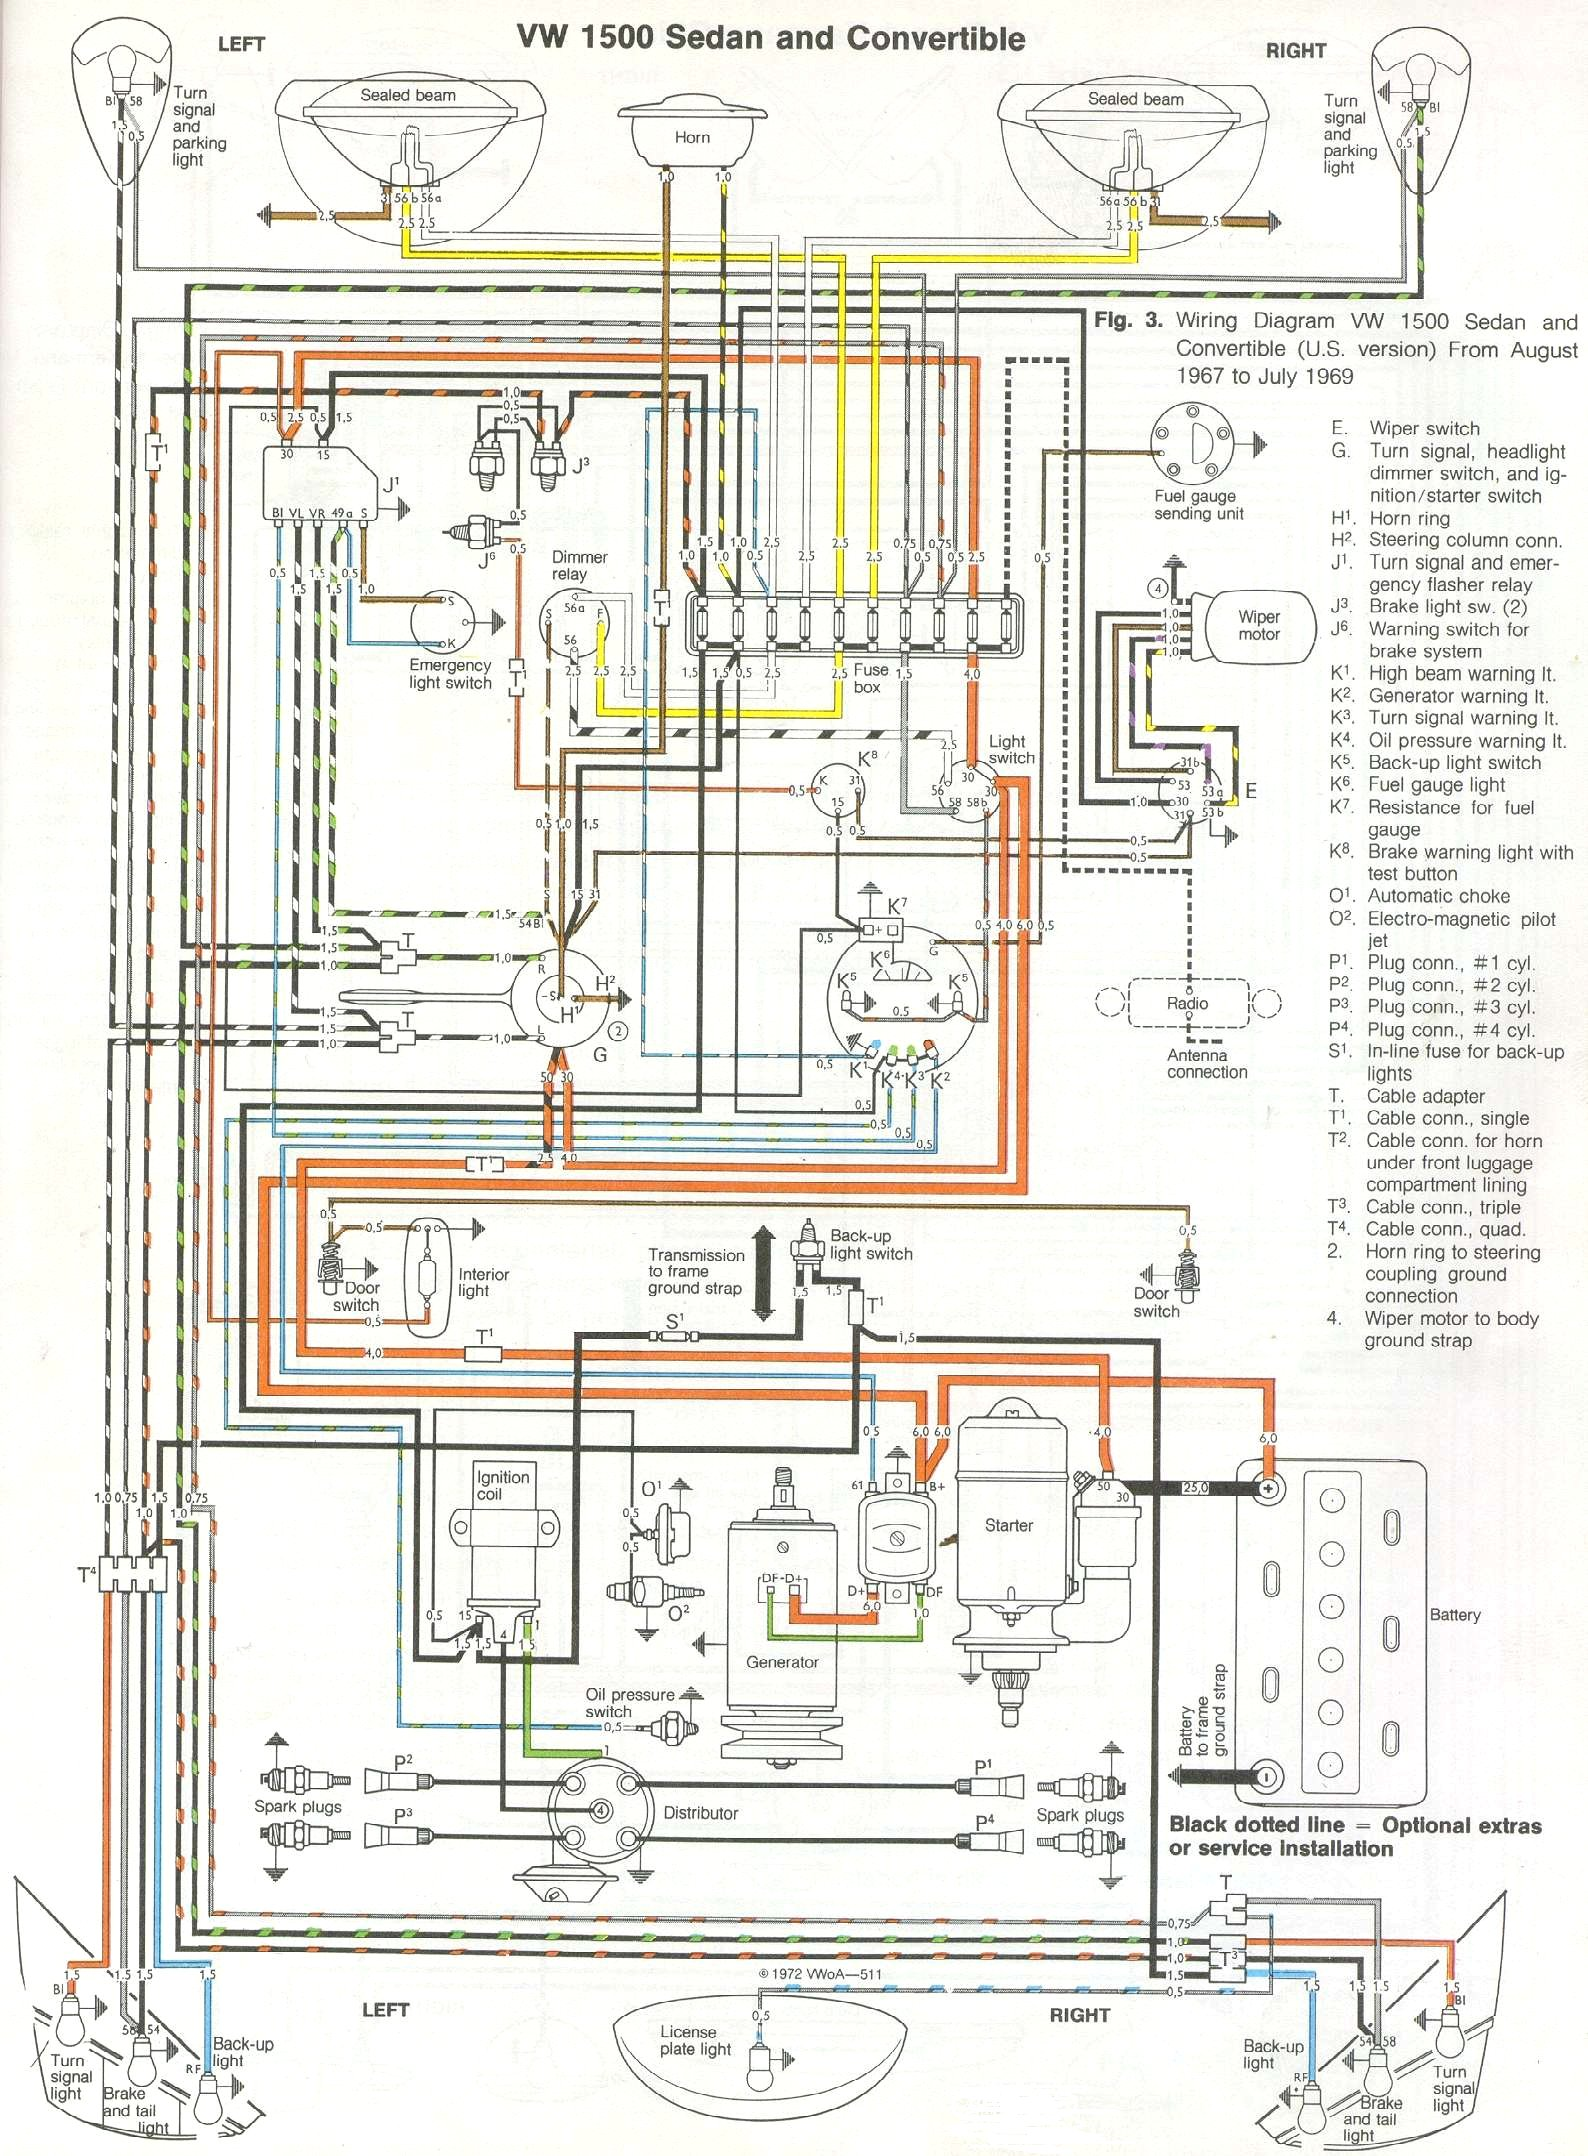 bug_6869 1969 71 beetle wiring diagram thegoldenbug com vw beetle wiring diagram at creativeand.co